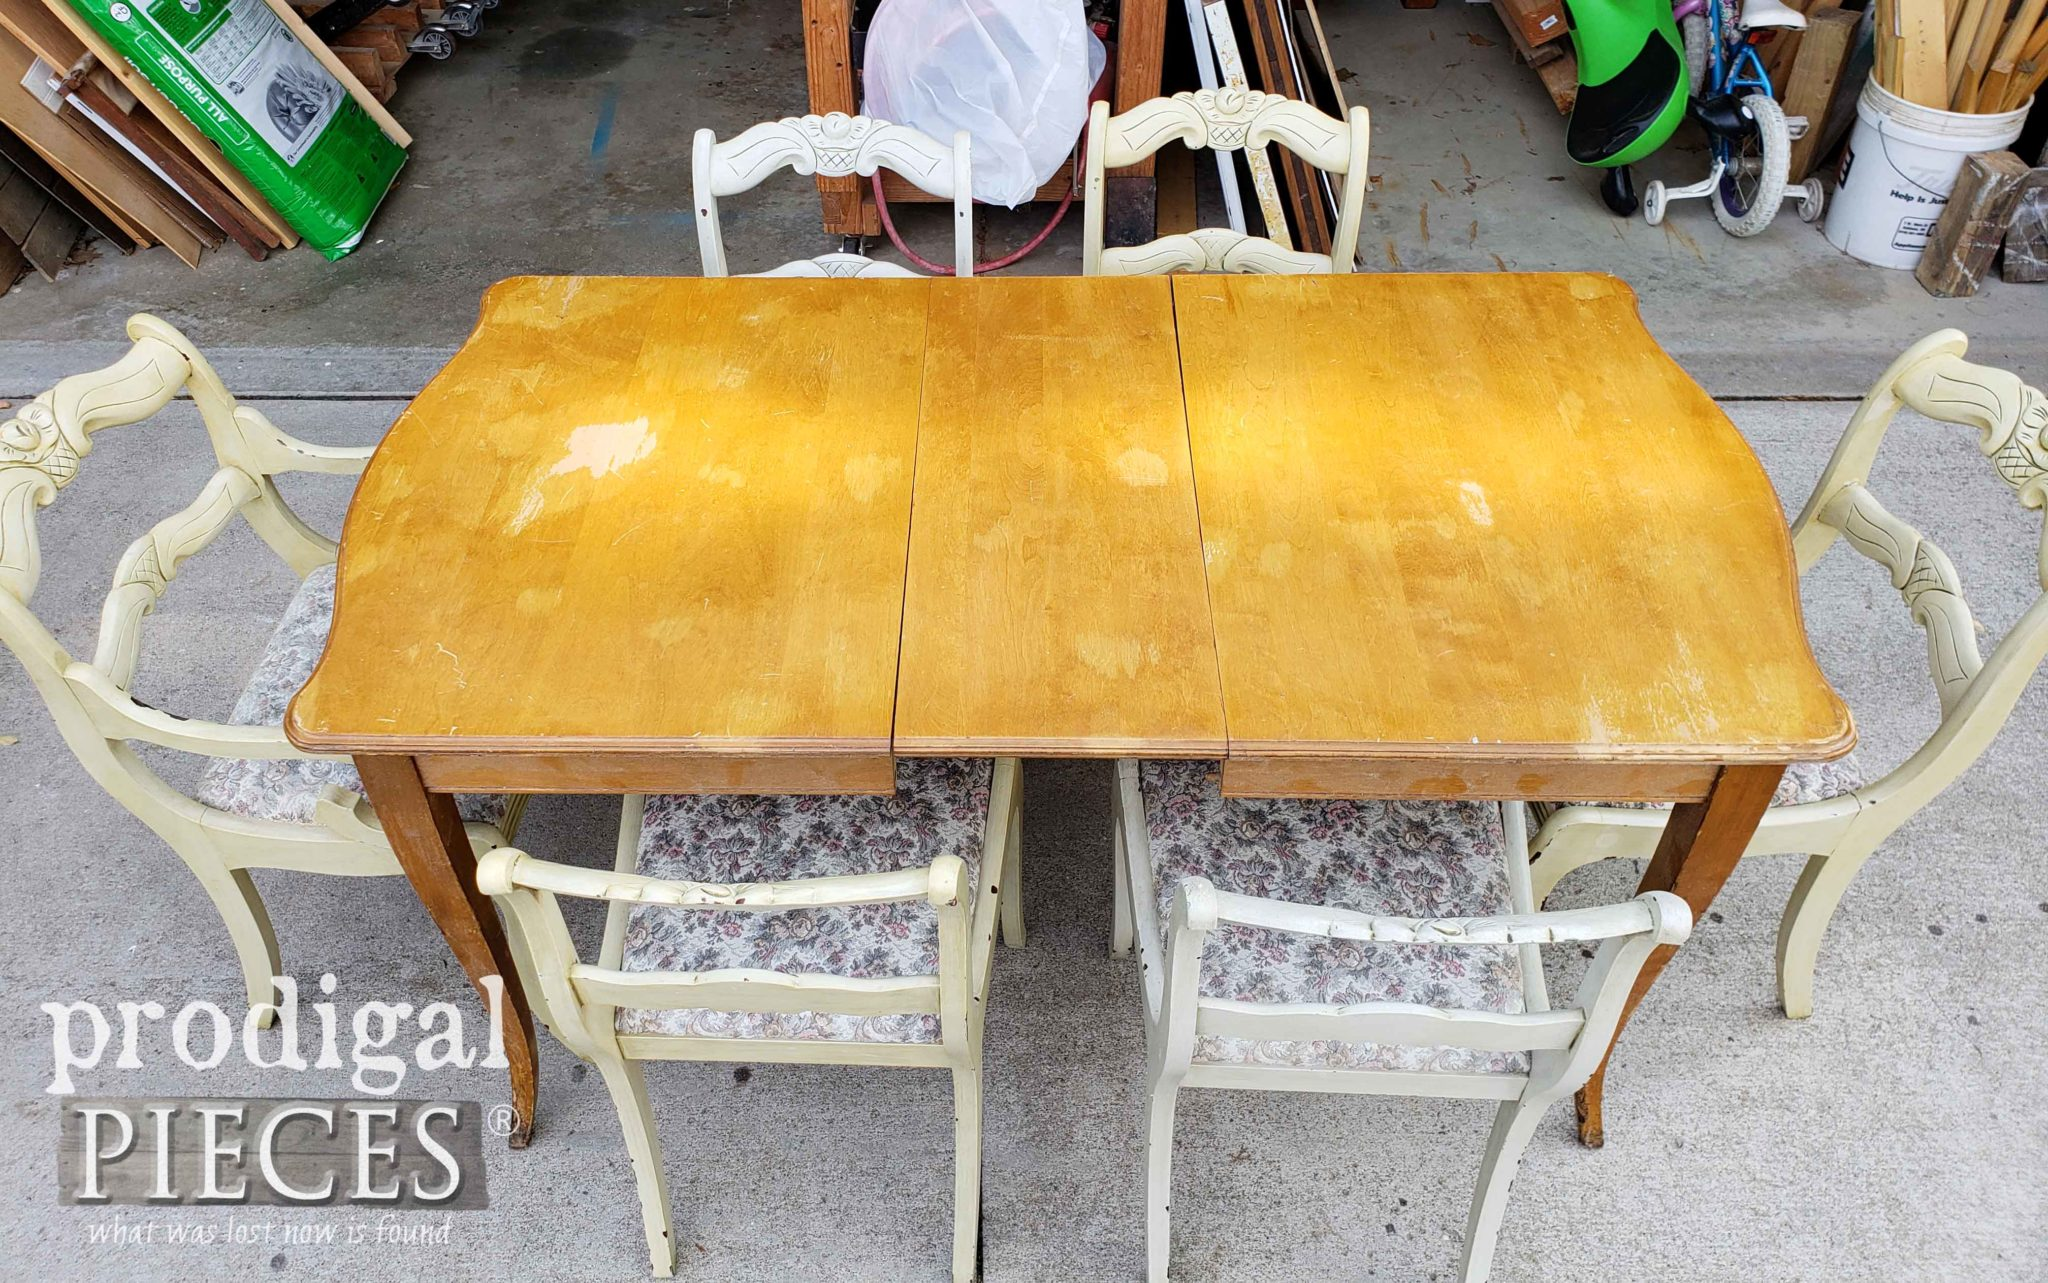 Damaged Dining Table Top | prodigalpieces.com